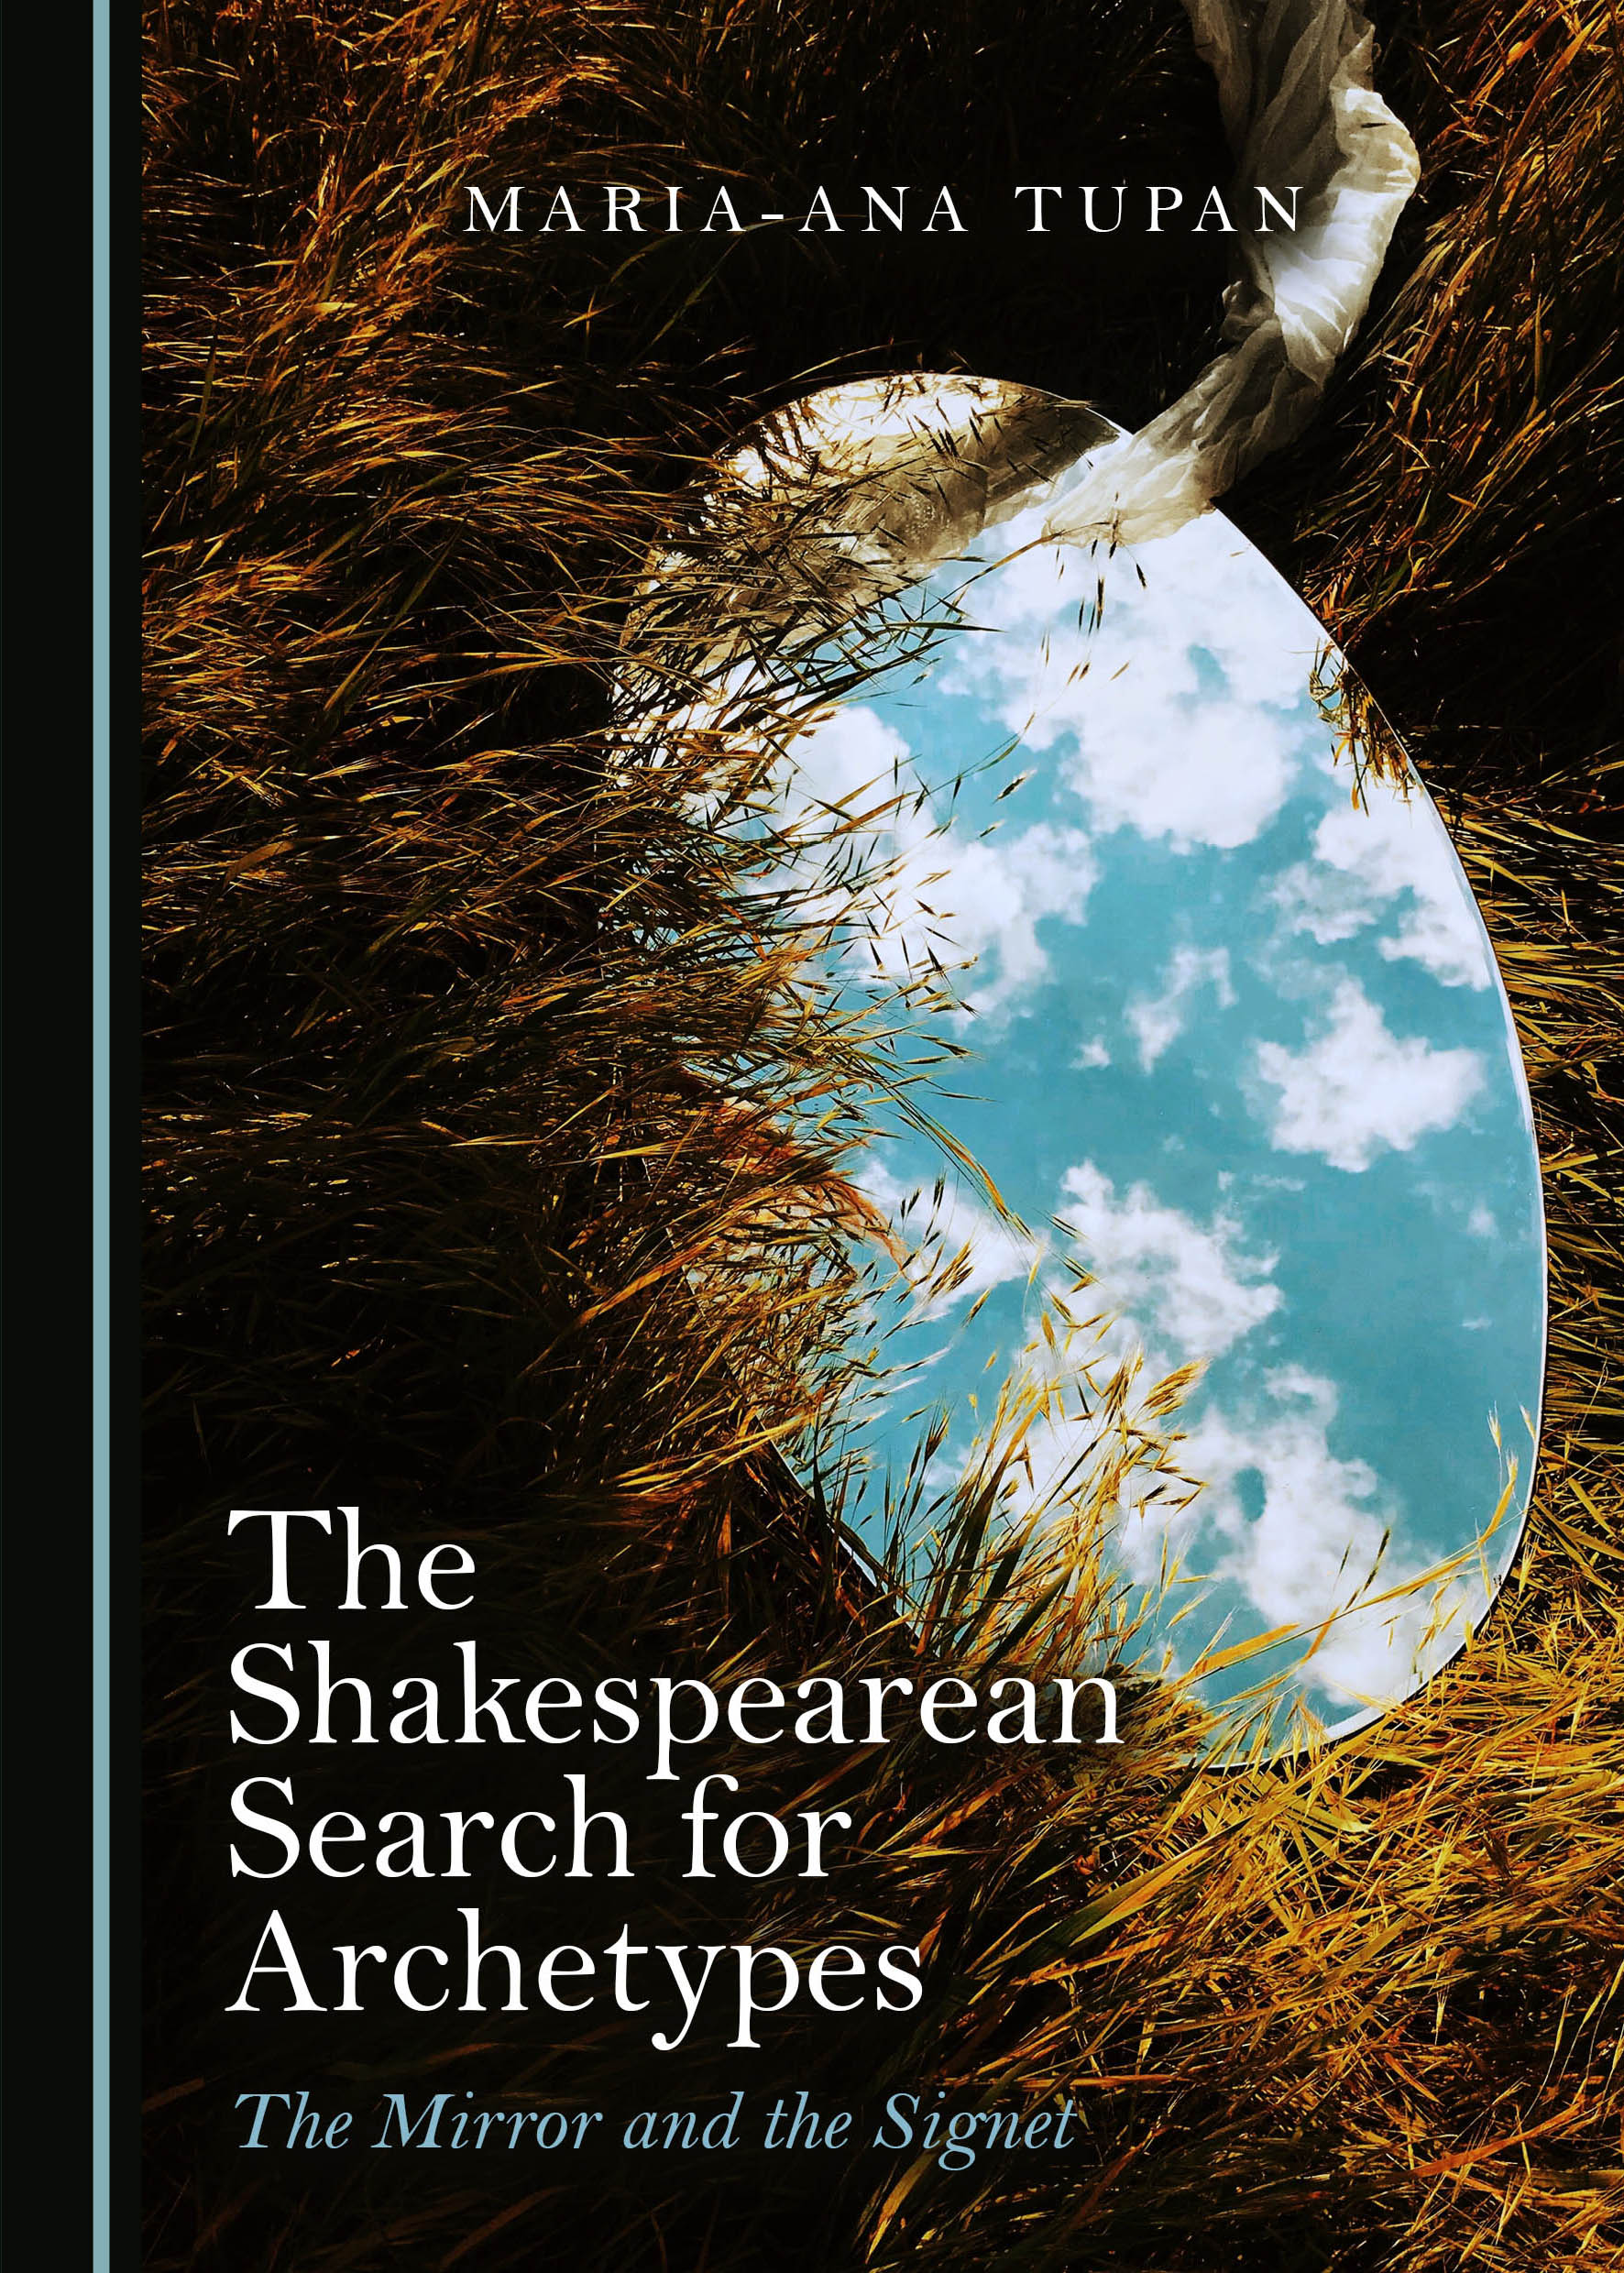 The Shakespearean Search for Archetypes: The Mirror and the Signet